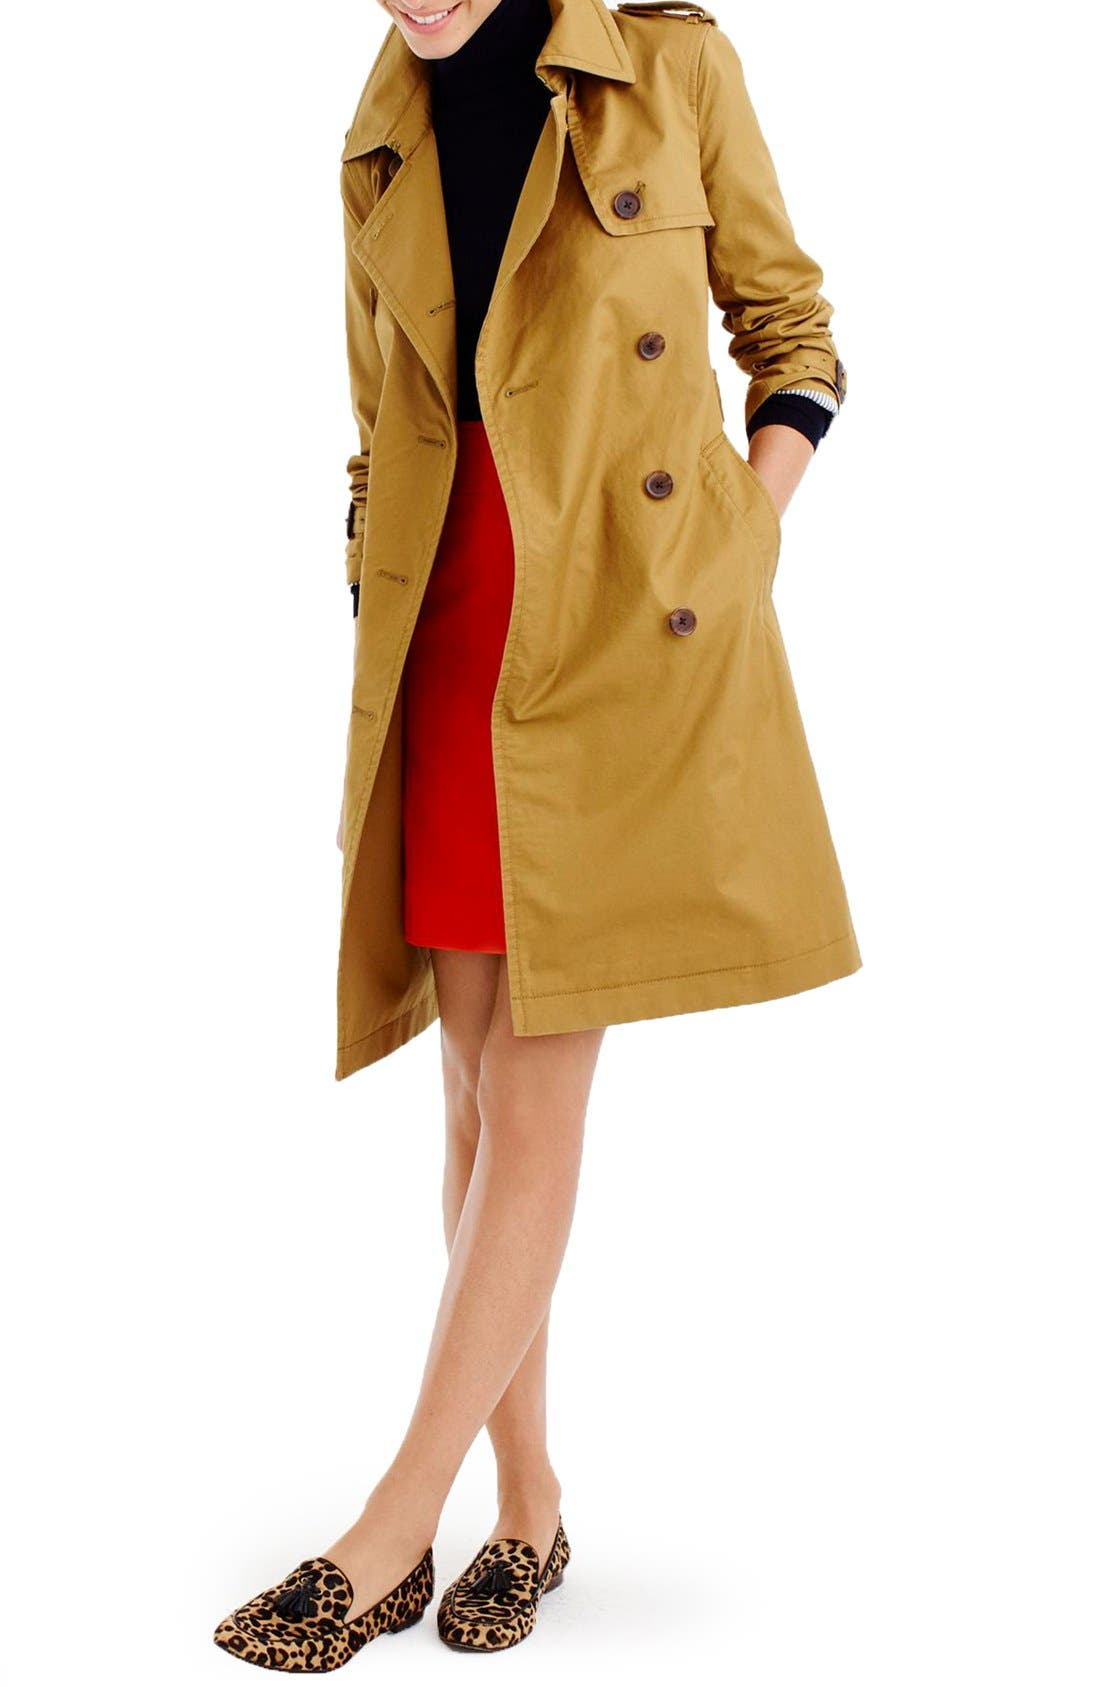 Alternate Image 1 Selected - J.Crew City Trench Coat